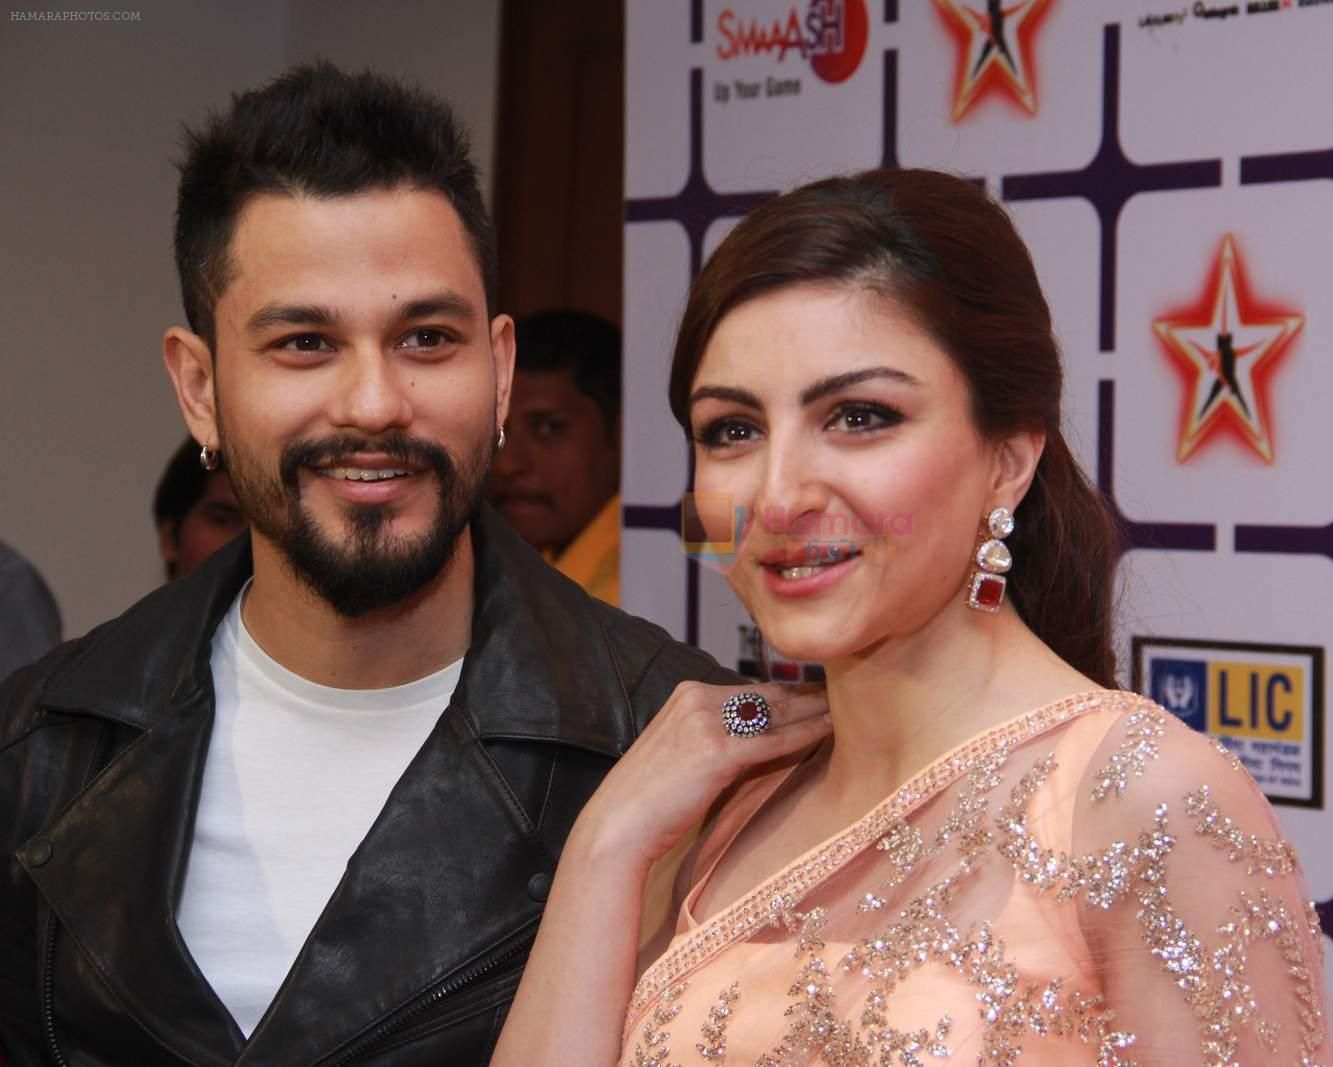 Soha Ali Khan and Kunal Khemu at Star Nite on 26th Dec 2015